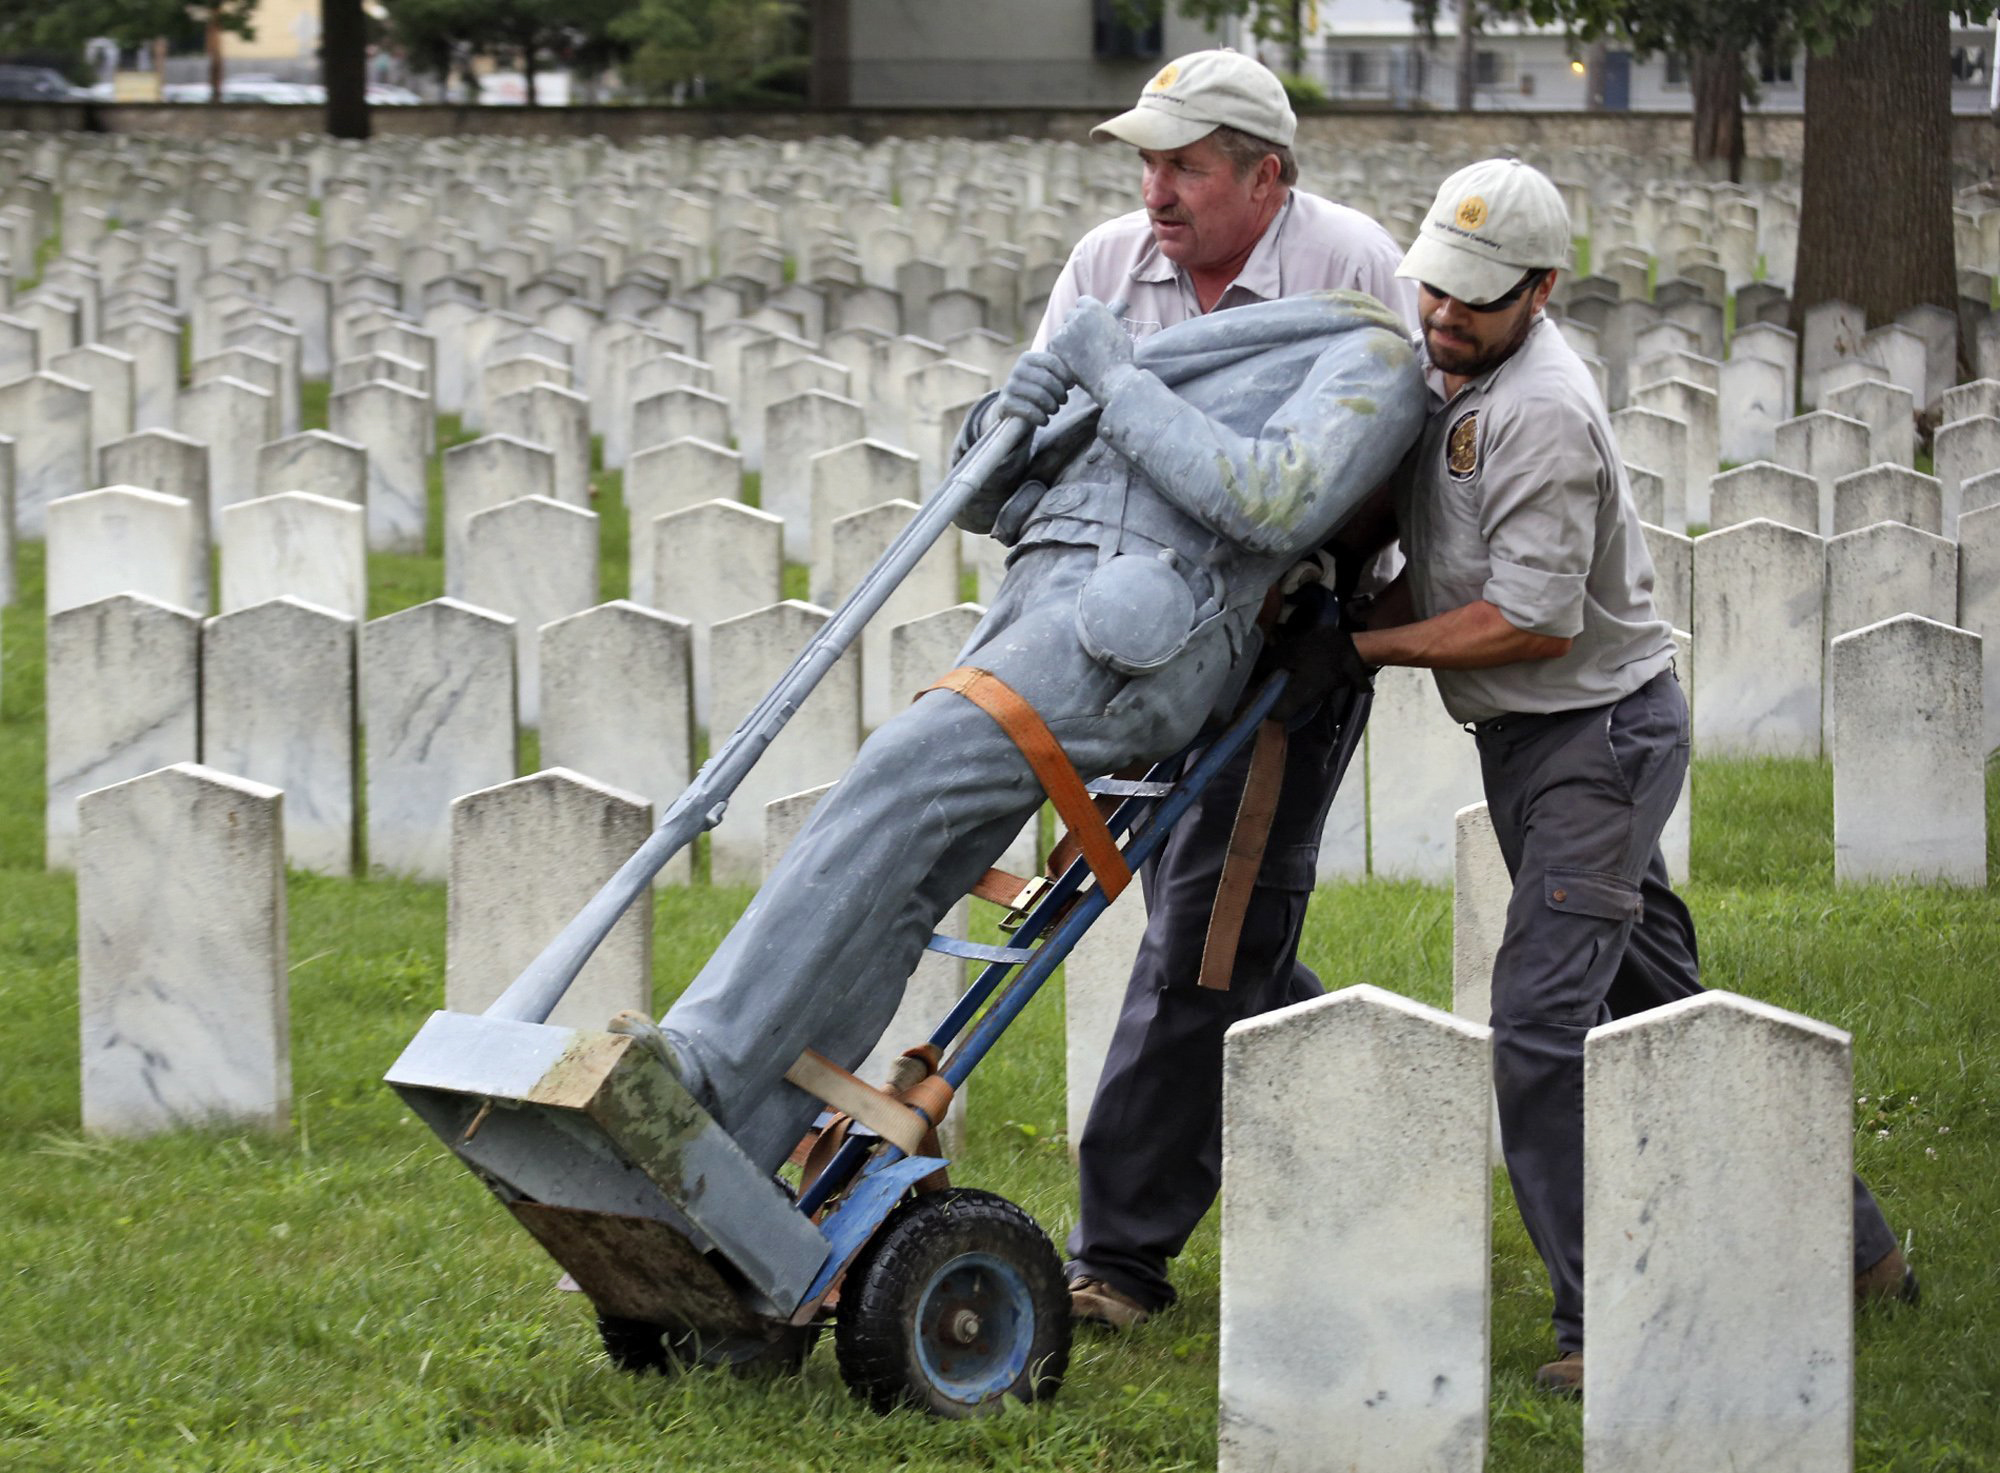 In this Aug. 22, 2017, photo, Bert Cambron, left, and Mark Wilson, employees of Dayton National Cemetery, move the vandalized Civil War Confederate soldier statue that stood in Camp Chase Confederate Cemetery in Columbus, Ohio. Two days later, the VA contracted with the Westmoreland Protection Agency, based in Sunrise, Fla., to provide unarmed security guards at Camp Chase and two other cemeteries. After last year's deadly clash between white nationalists and counter-protesters in Charlottesville, Va., the federal government quietly spent millions of dollars to hire private security guards to stand watch over several Confederate cemeteries, documents from the Department of Veterans Affairs show. (Eric Albrecht/The Columbus Dispatch via AP)